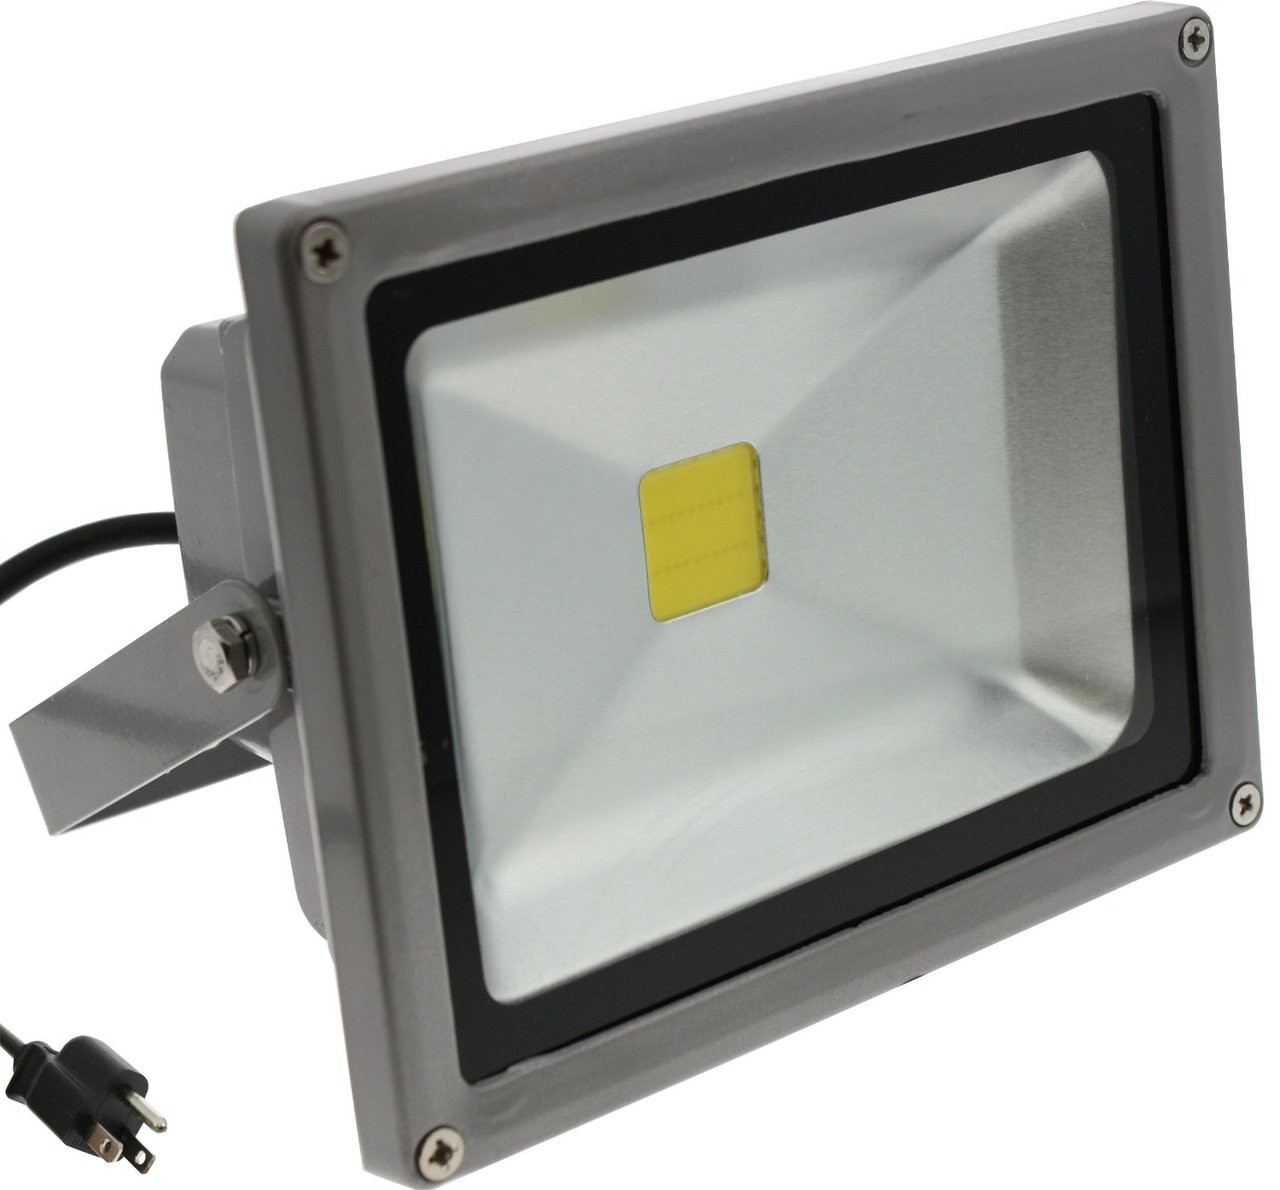 Outdoor Security Lighting 20w flood light tdltek 20w cool white led flood light spotlight image 1 workwithnaturefo